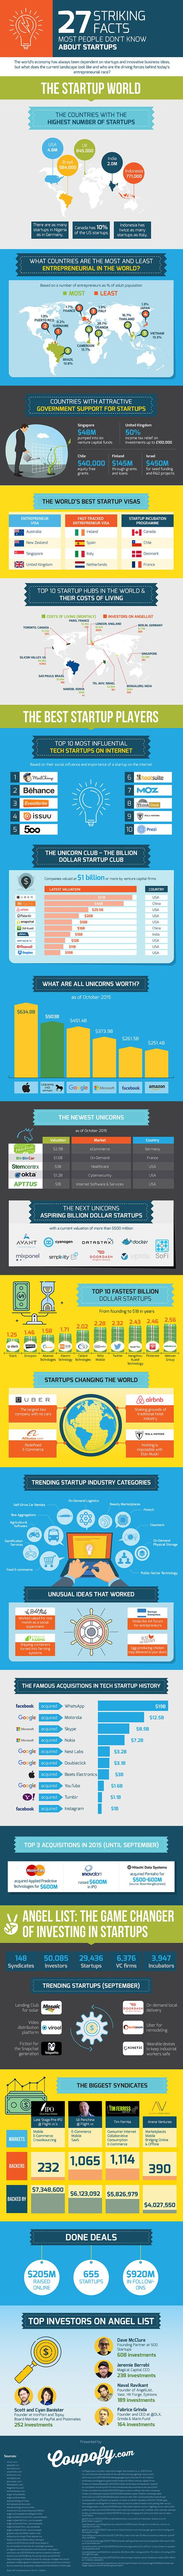 Facts About Startups: Did You Know Uganda is More Entrepreneurial than the US? (Infographic) - Biz Epic